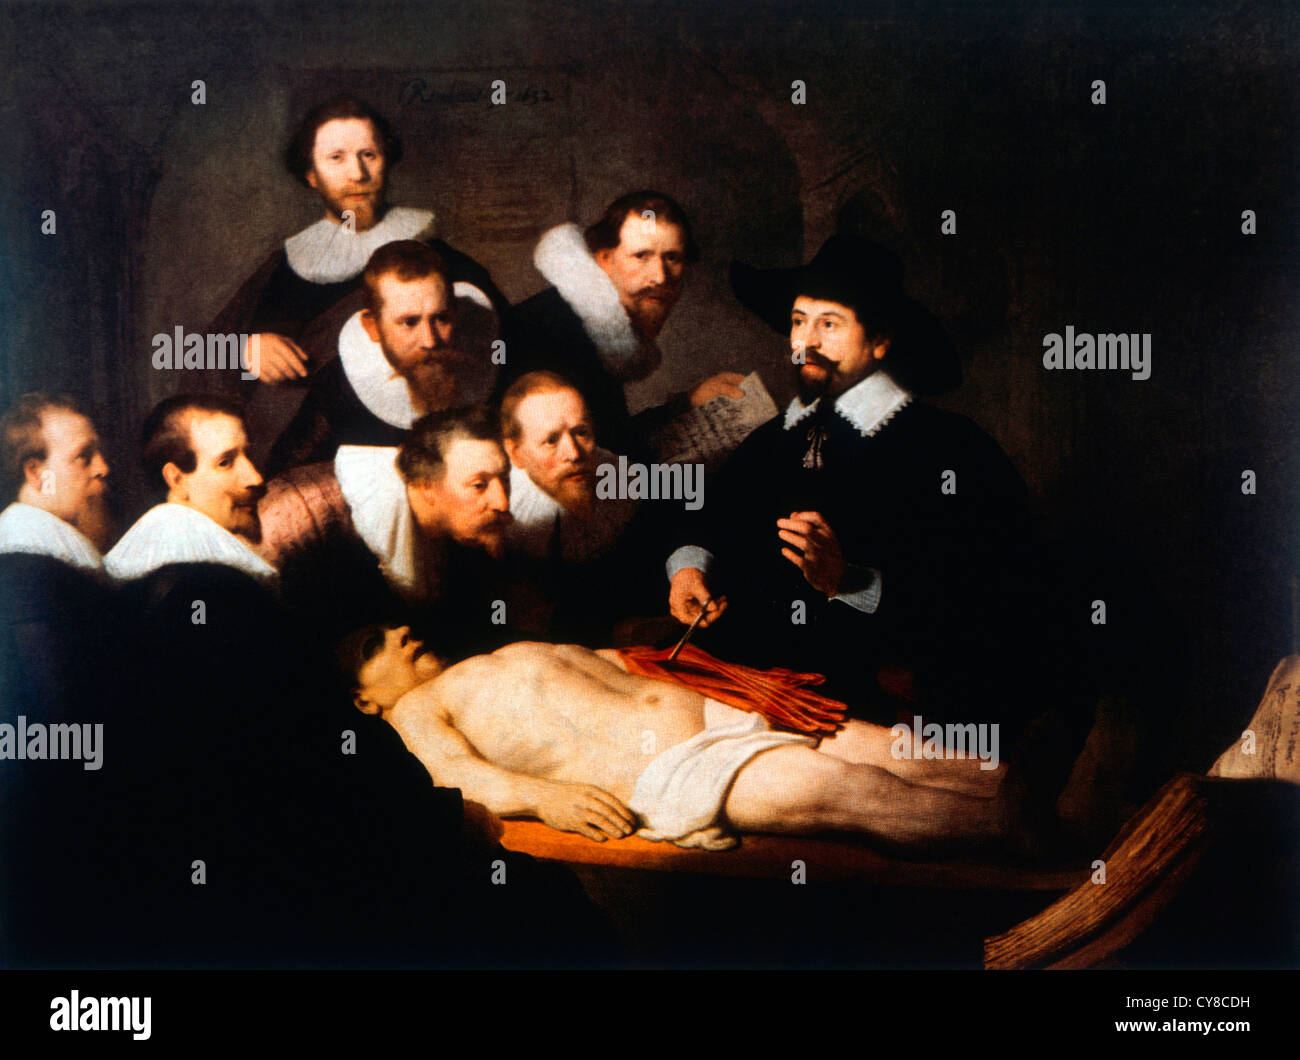 The Anatomy Lesson Of Dr Tulp Painting By Rembrandt 1632 Stock